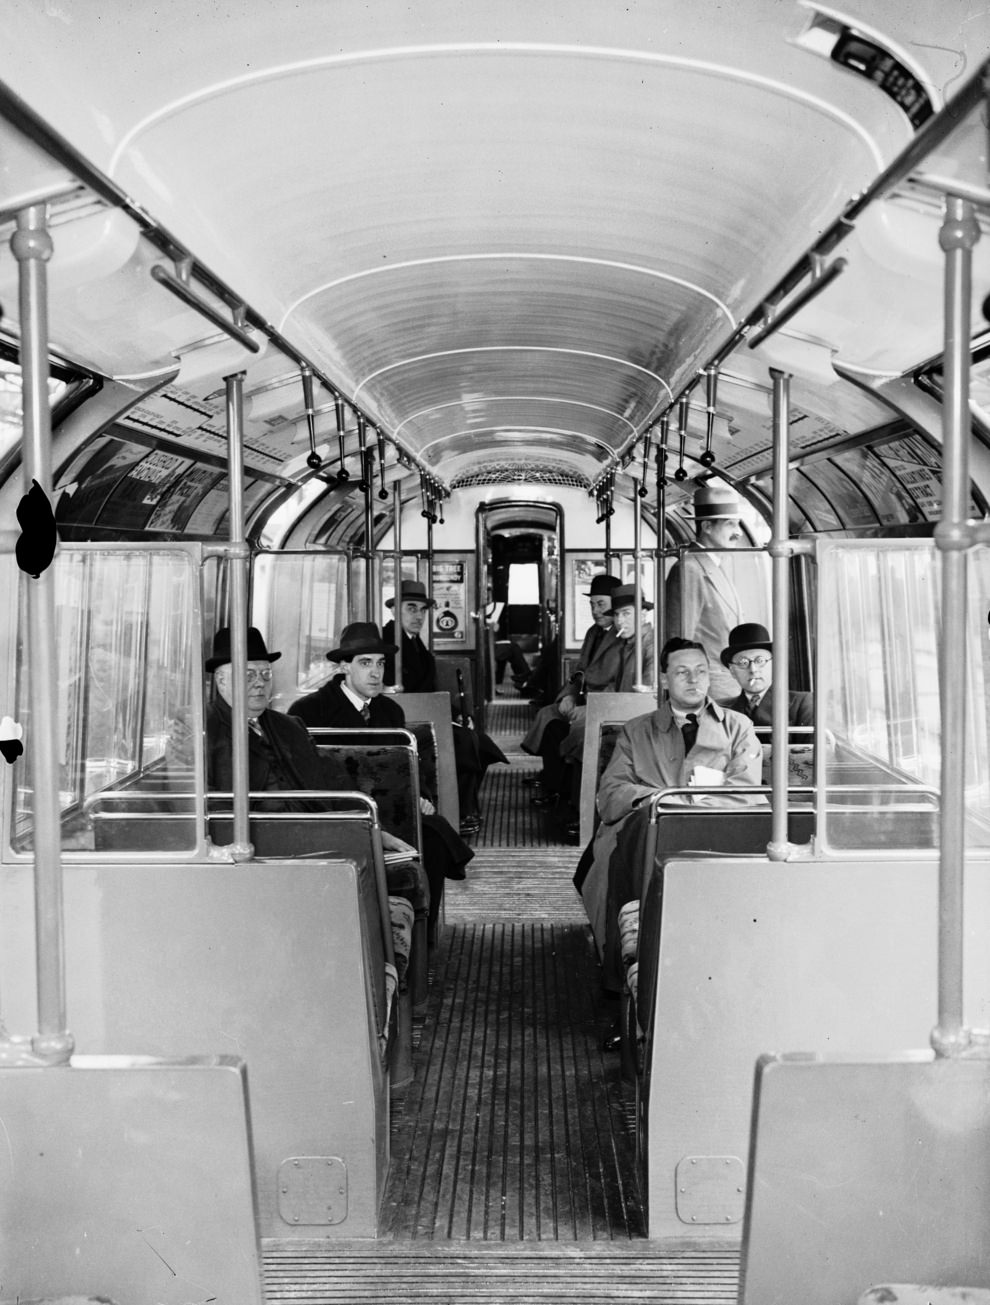 New interiors in 1936: more seating, better lighting and ventilation and a more streamlined shape.